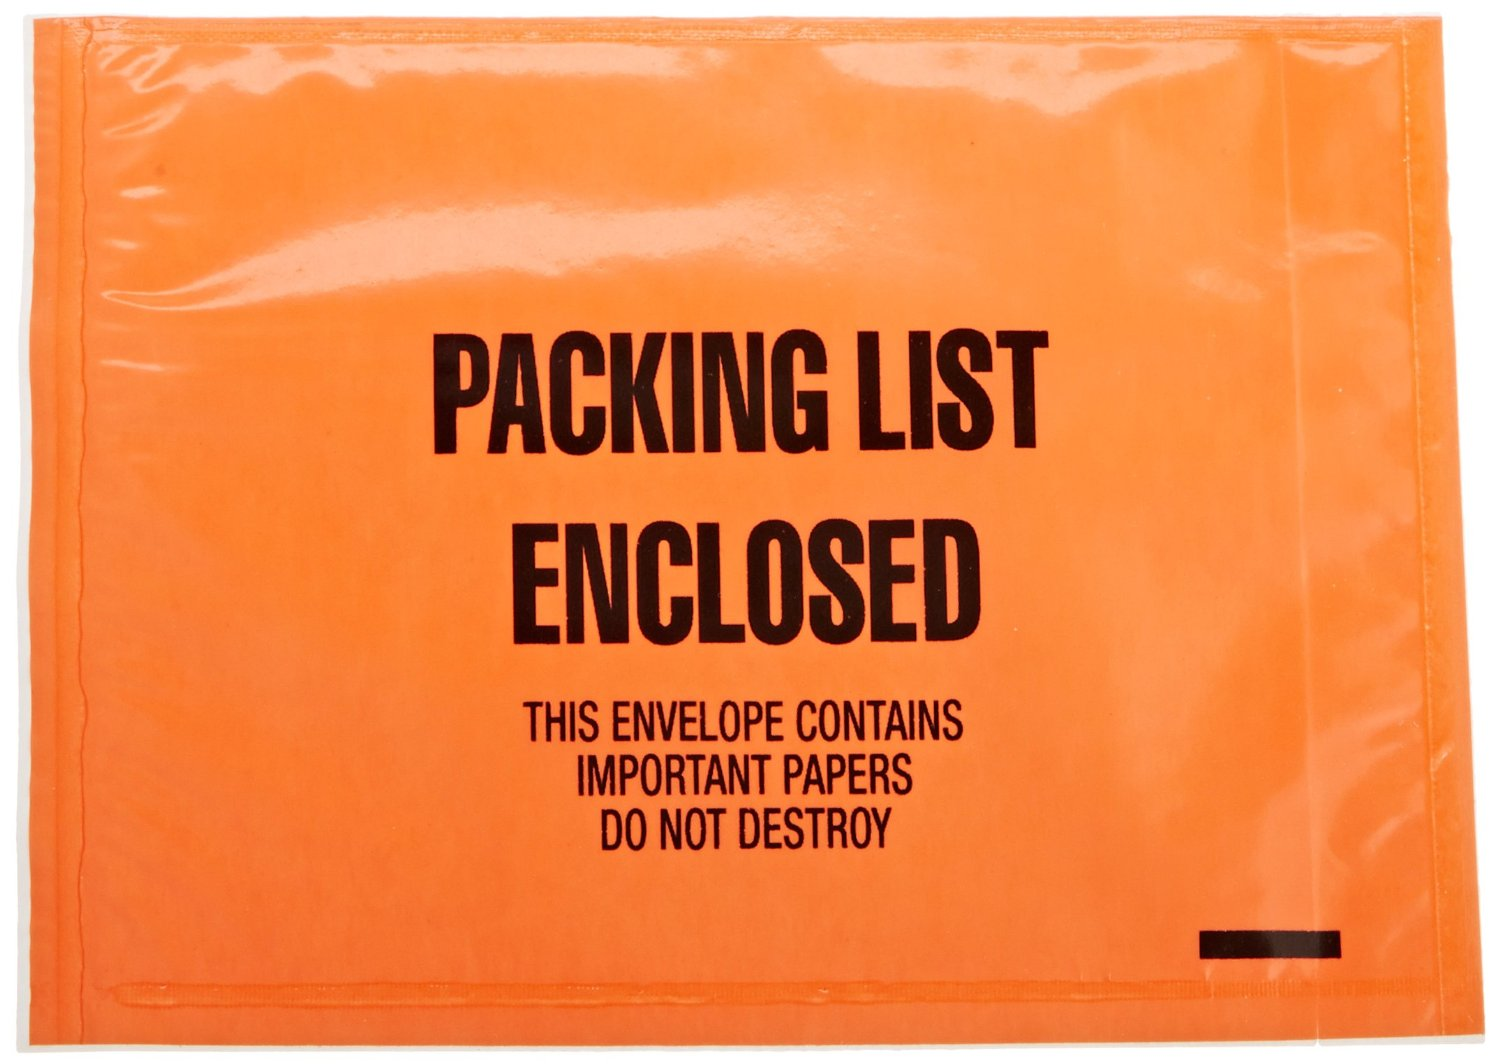 """Aviditi JMR10 Poly Military-Specification Envelope, Legend """"PACKING LIST ENCLOSED - THIS ENVELOPE CONTAINS IMPORTANT PAPERS DO NOT DESTROY"""", 4-1/2"""" Length x 6"""" Width, 2 mil Thick, Black on Orange (Case of 1000)"""